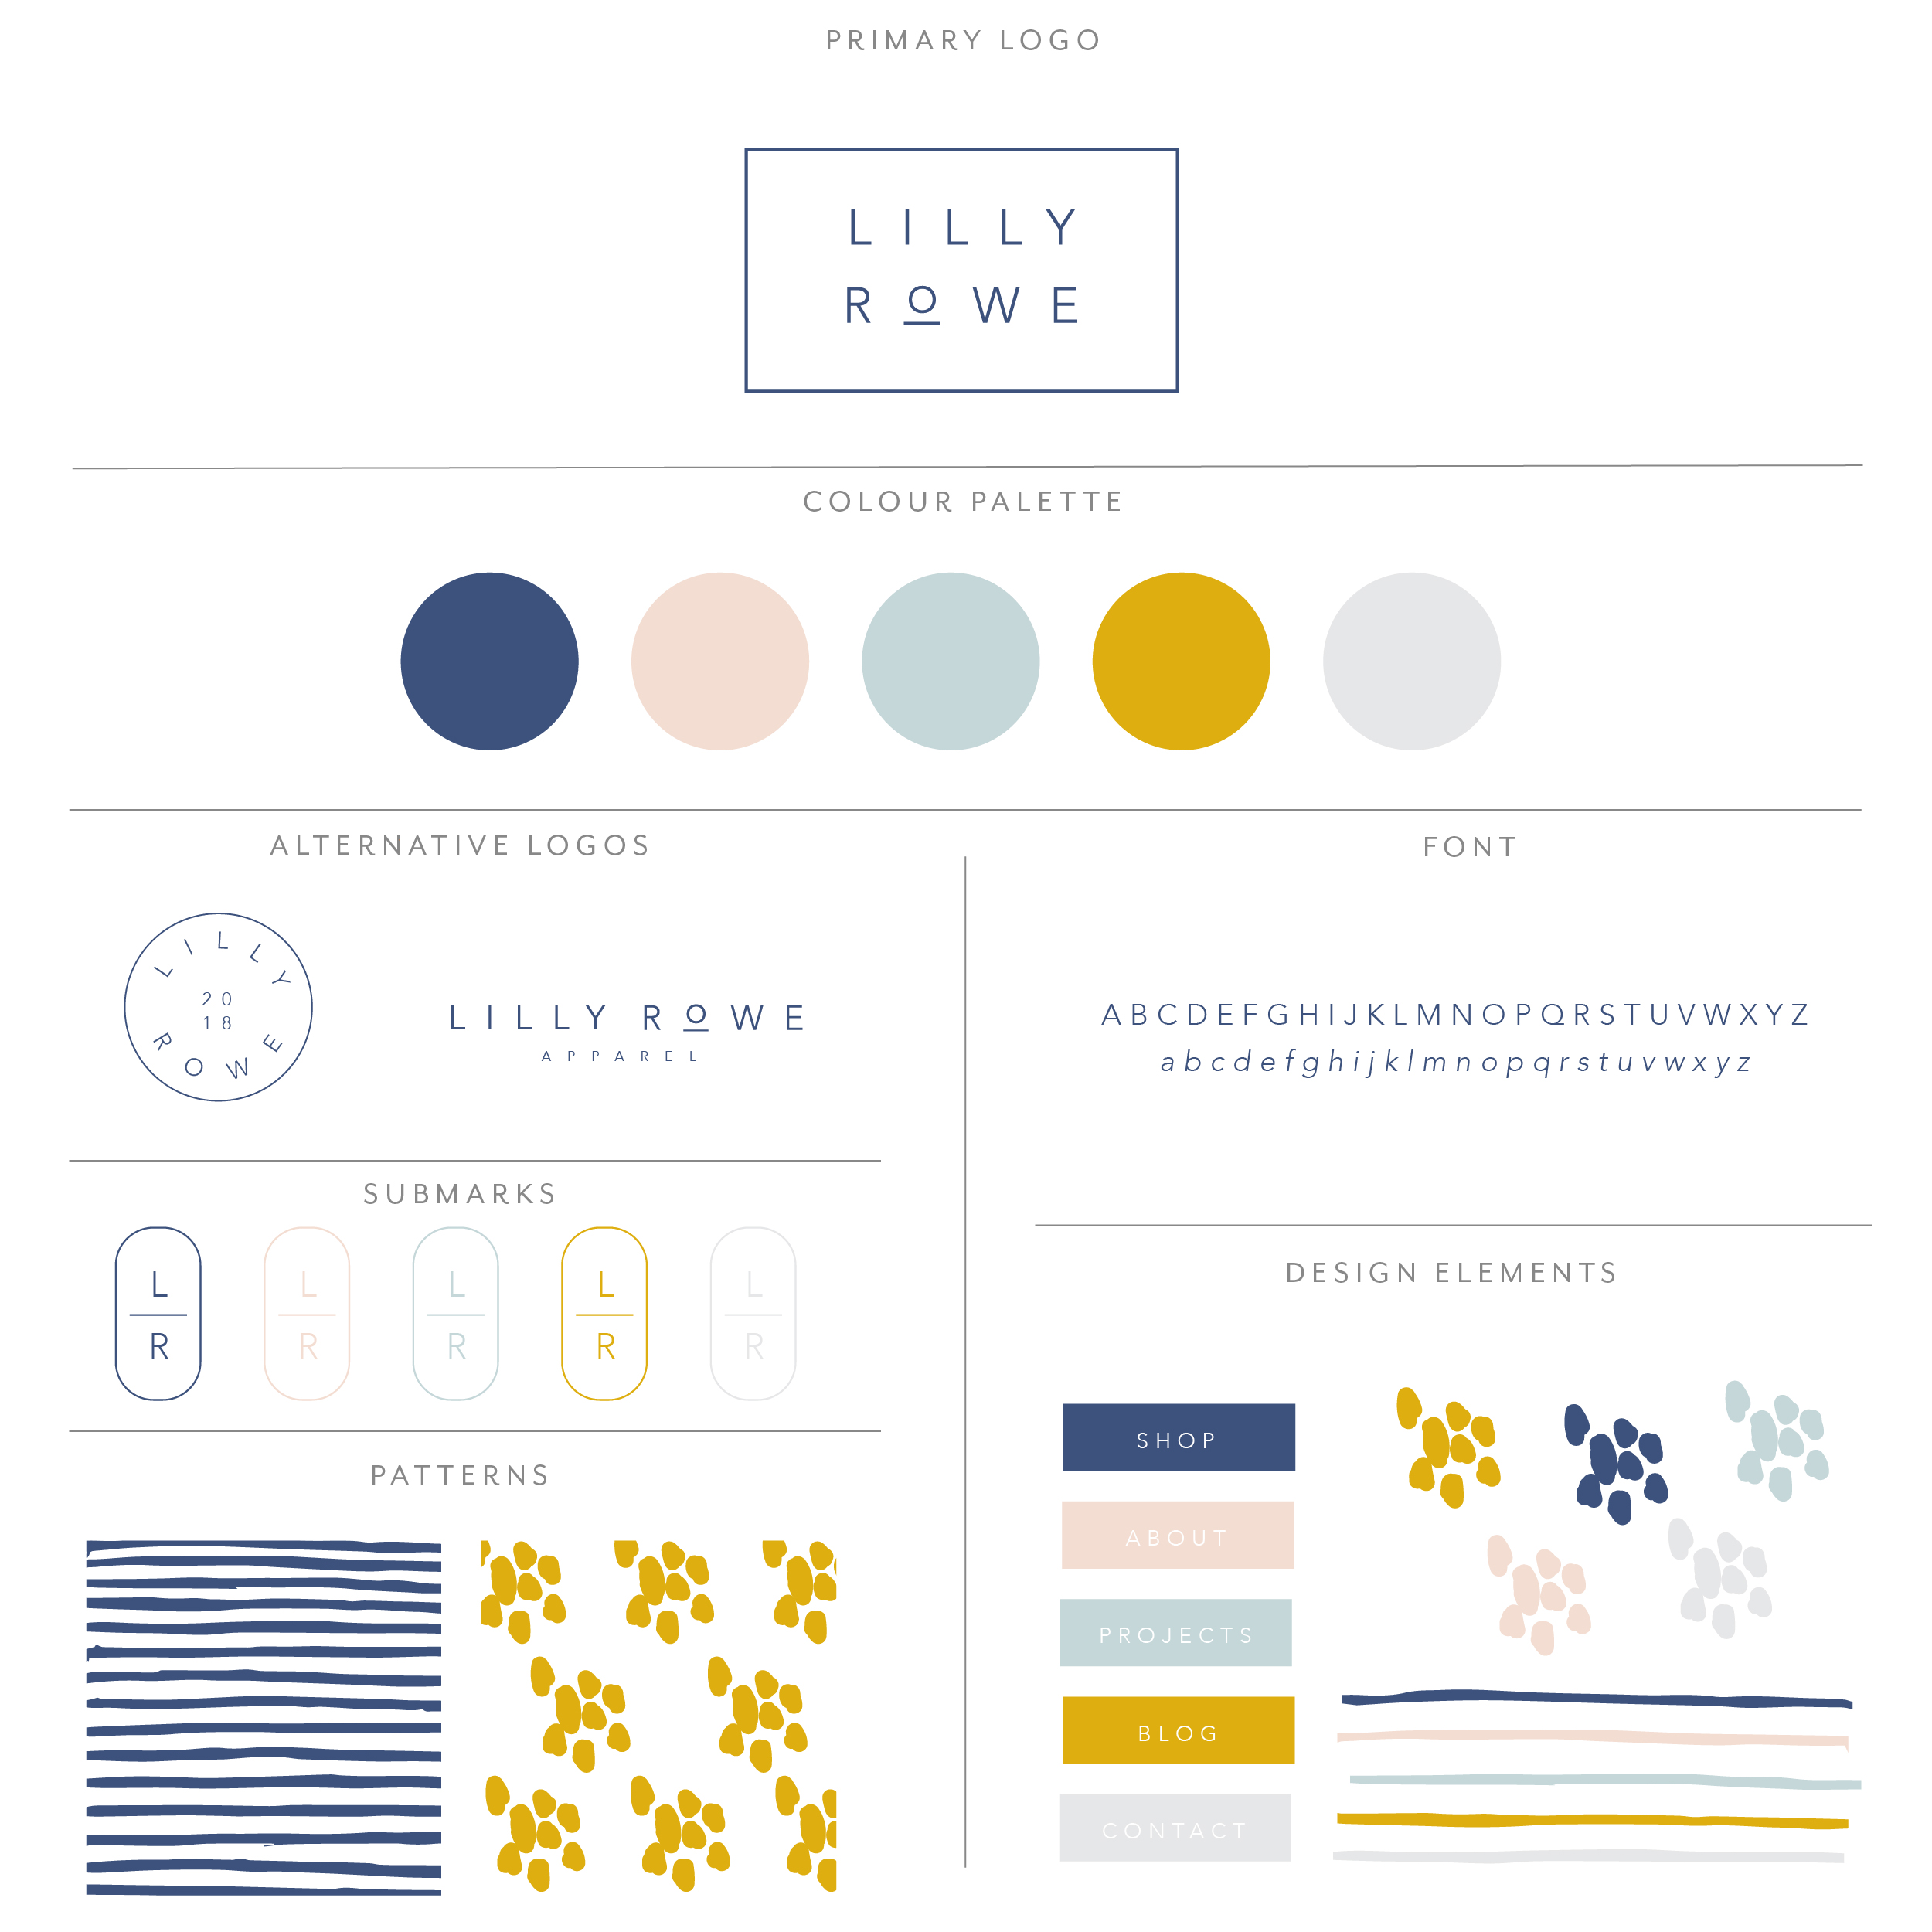 Lilly Rowe  is a modern, clean  and simplistic design with stacked san serif font with a thin rectangular box around it. Using hues of blues, a very light blush and yellow to give modern feel.